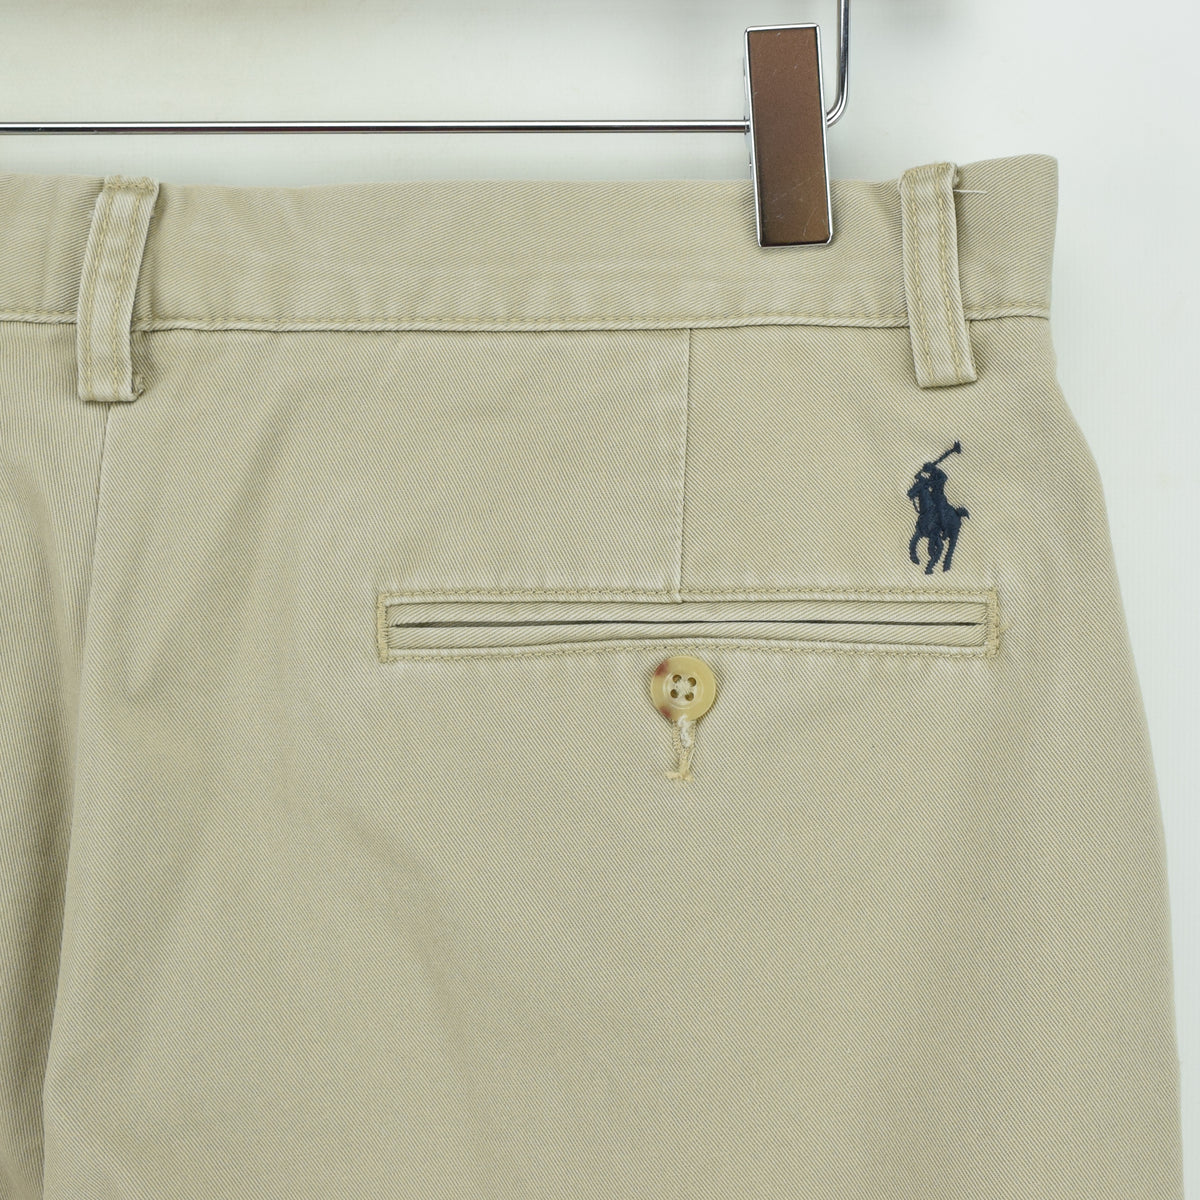 Vintage Ralph Lauren Polo Preston Pant Chinos Flat Front Trousers 32 W 29 L back waist